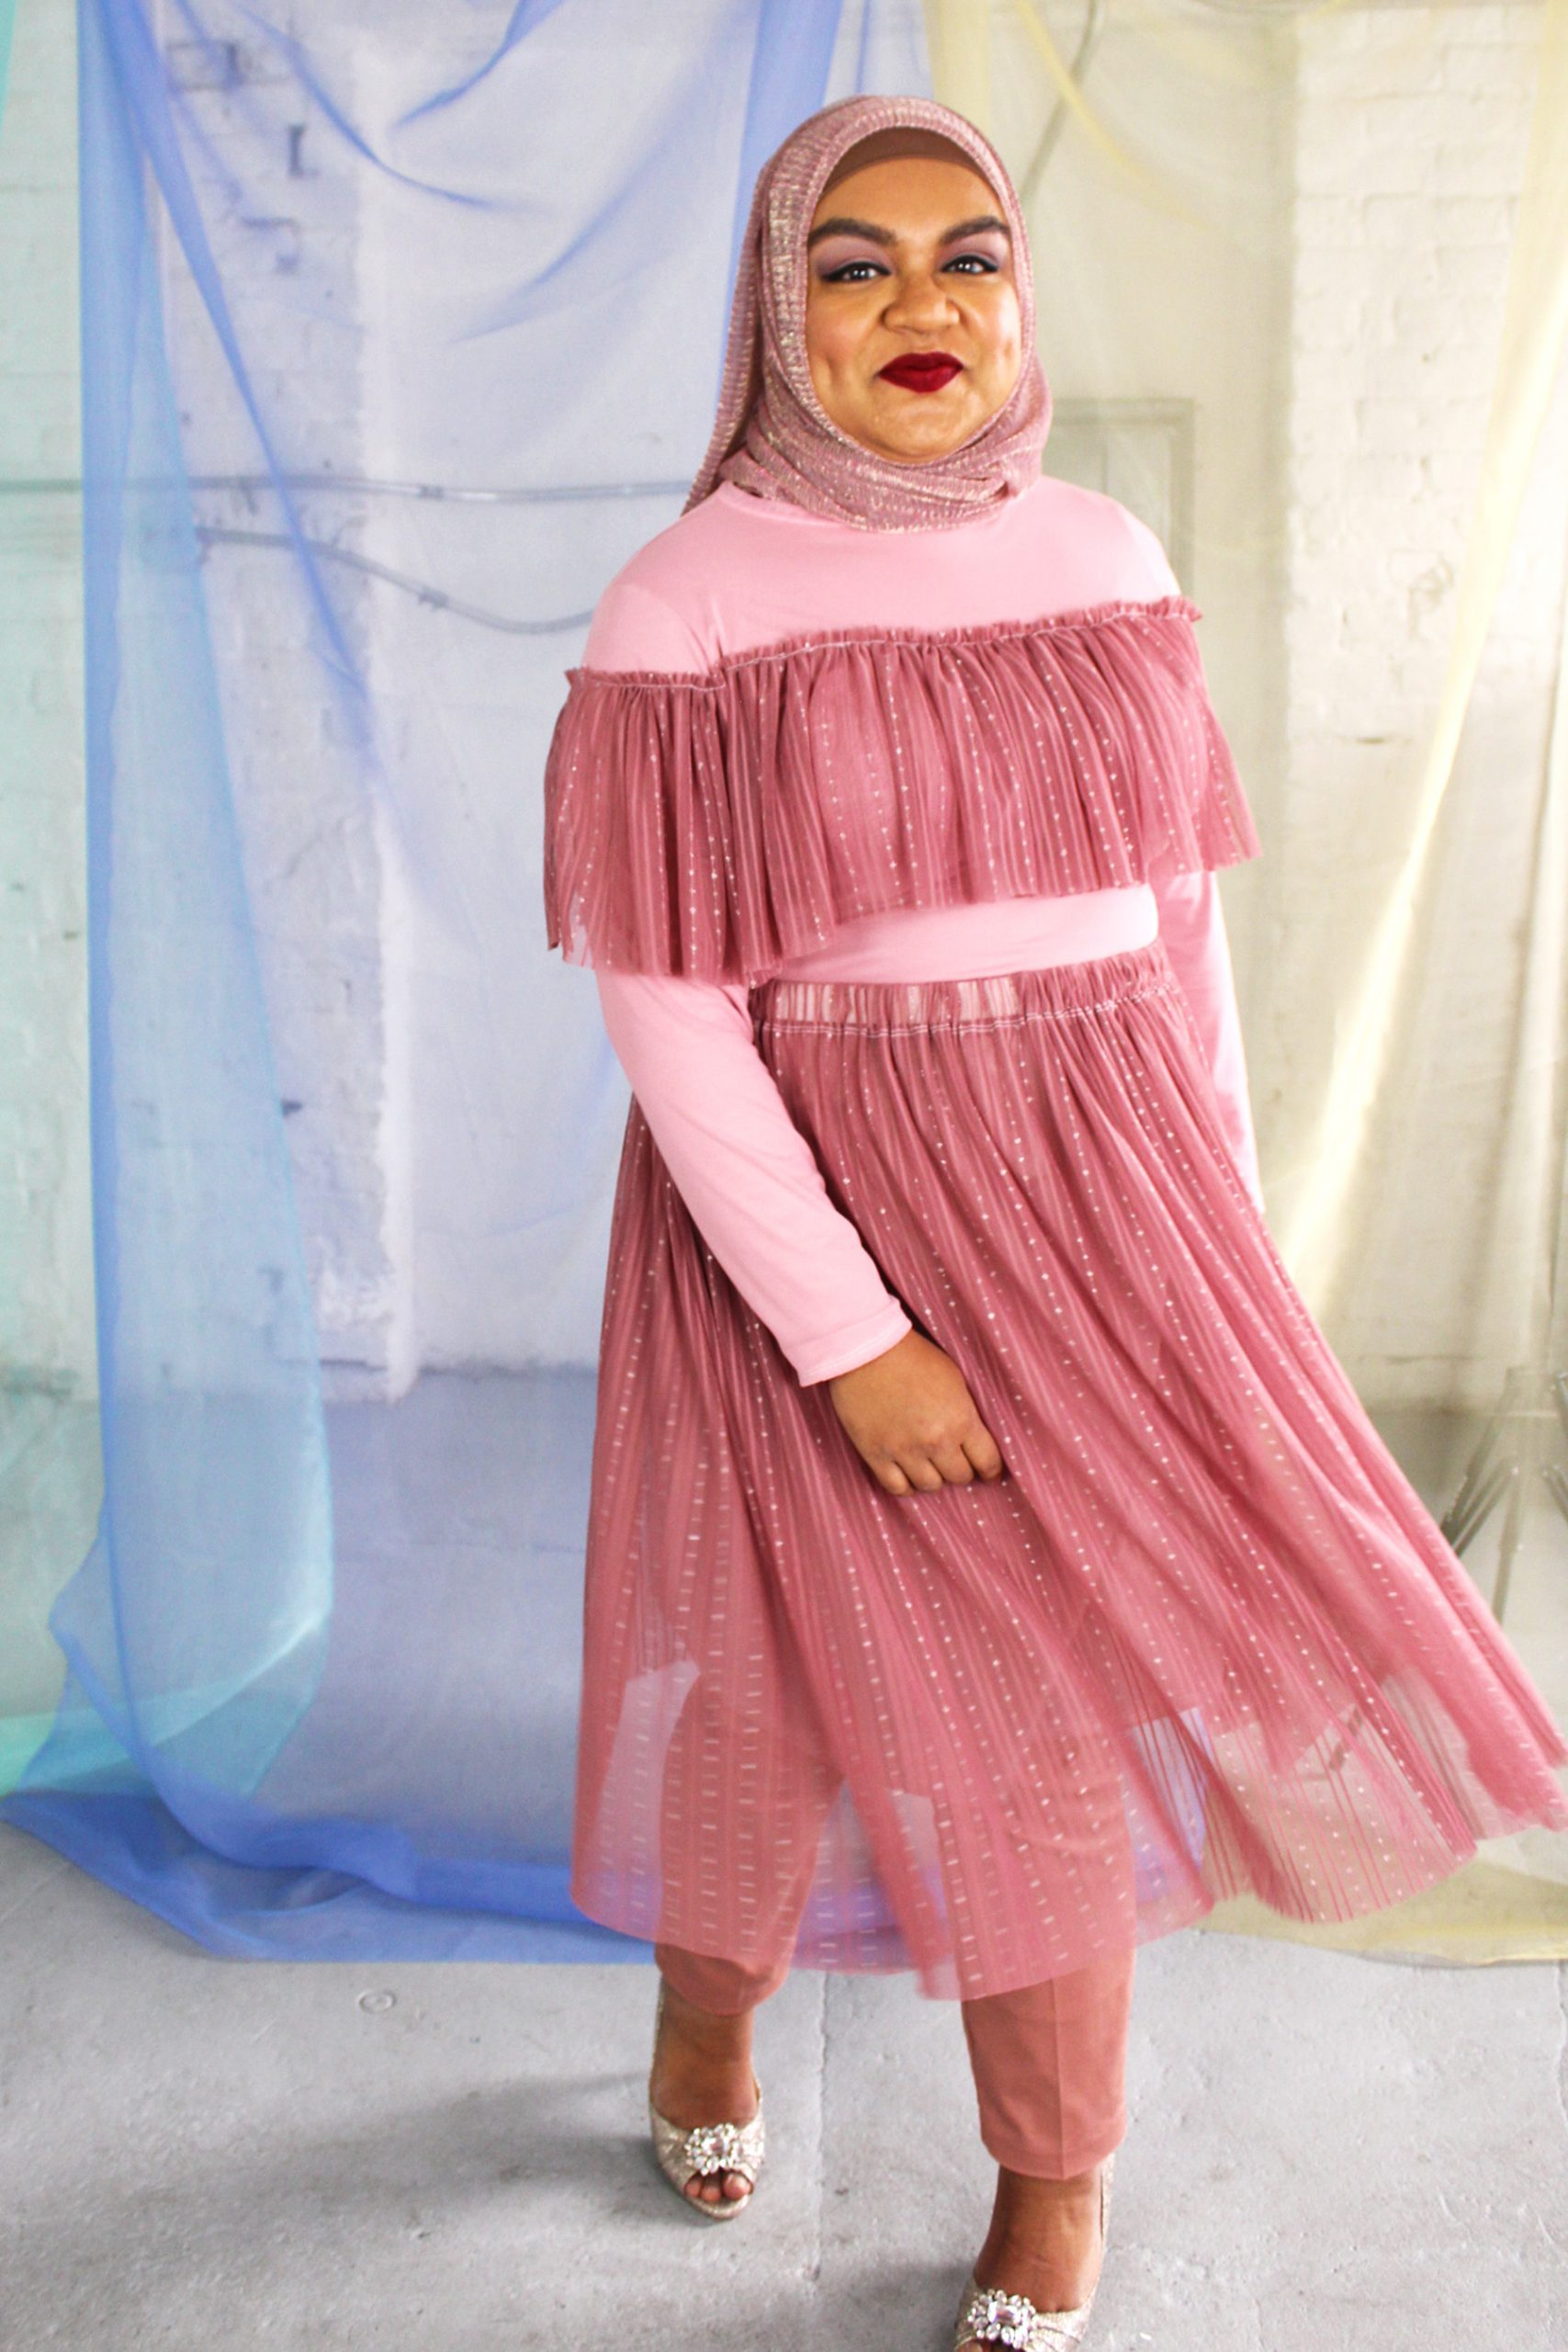 Hijabi plus size model wearing dusty rose pink mesh skirt twirling and happy, with matching long sleeve ruffle top